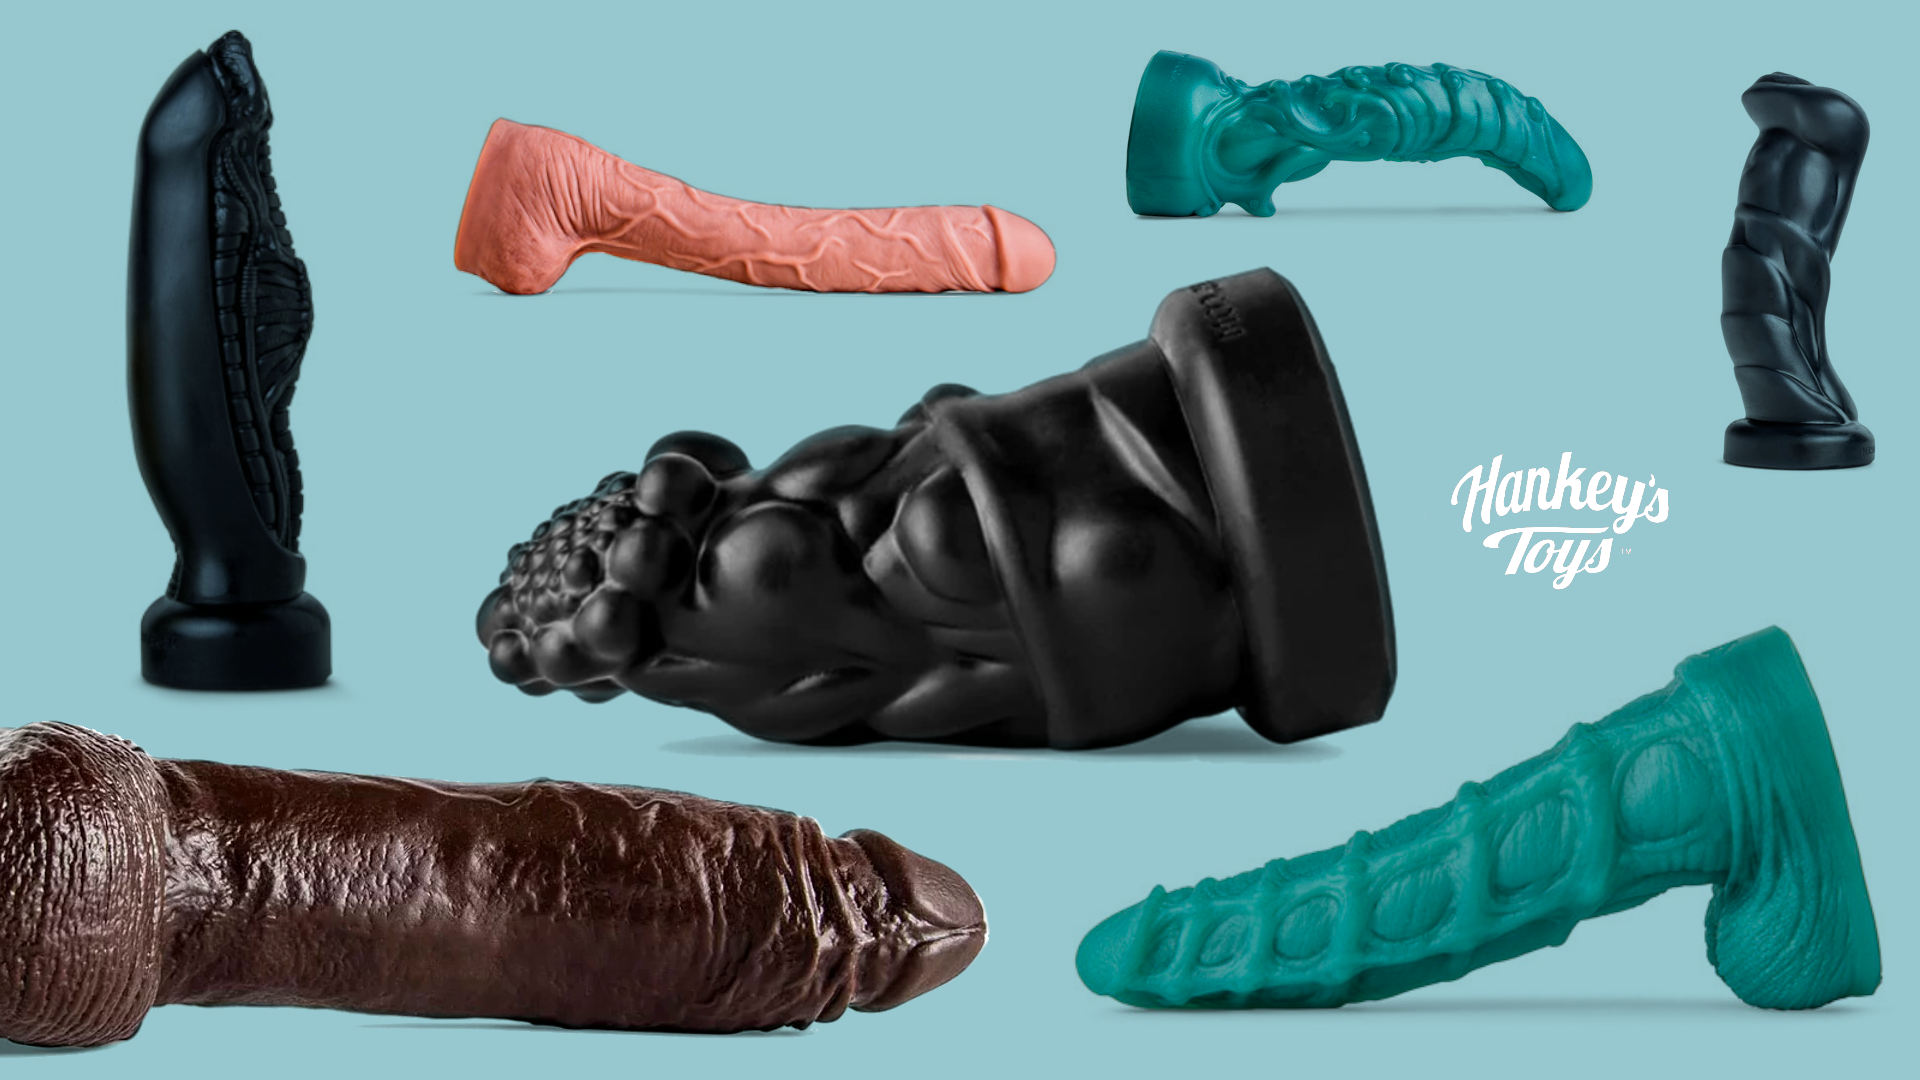 Mr Hankey's toys and dildos.